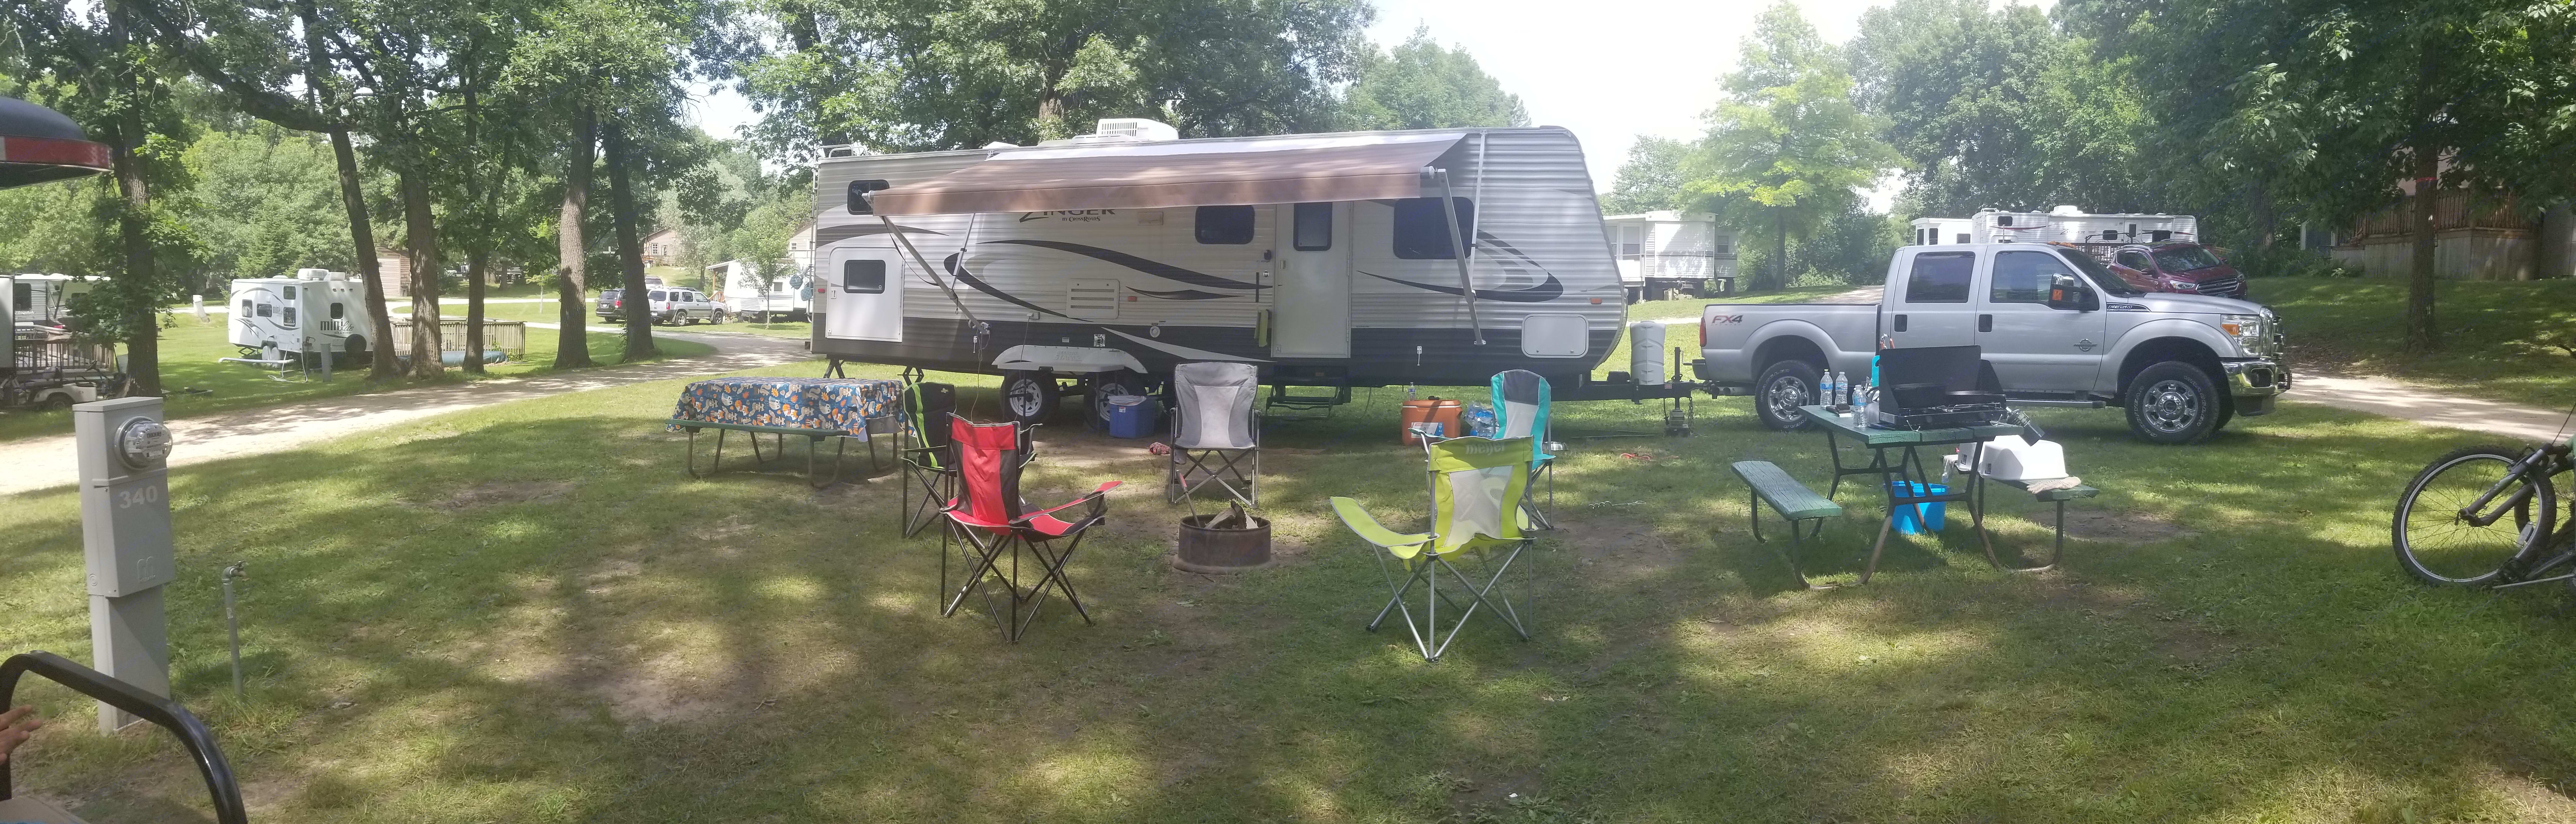 All set up at our campsite. Crossroads Zinger 2012